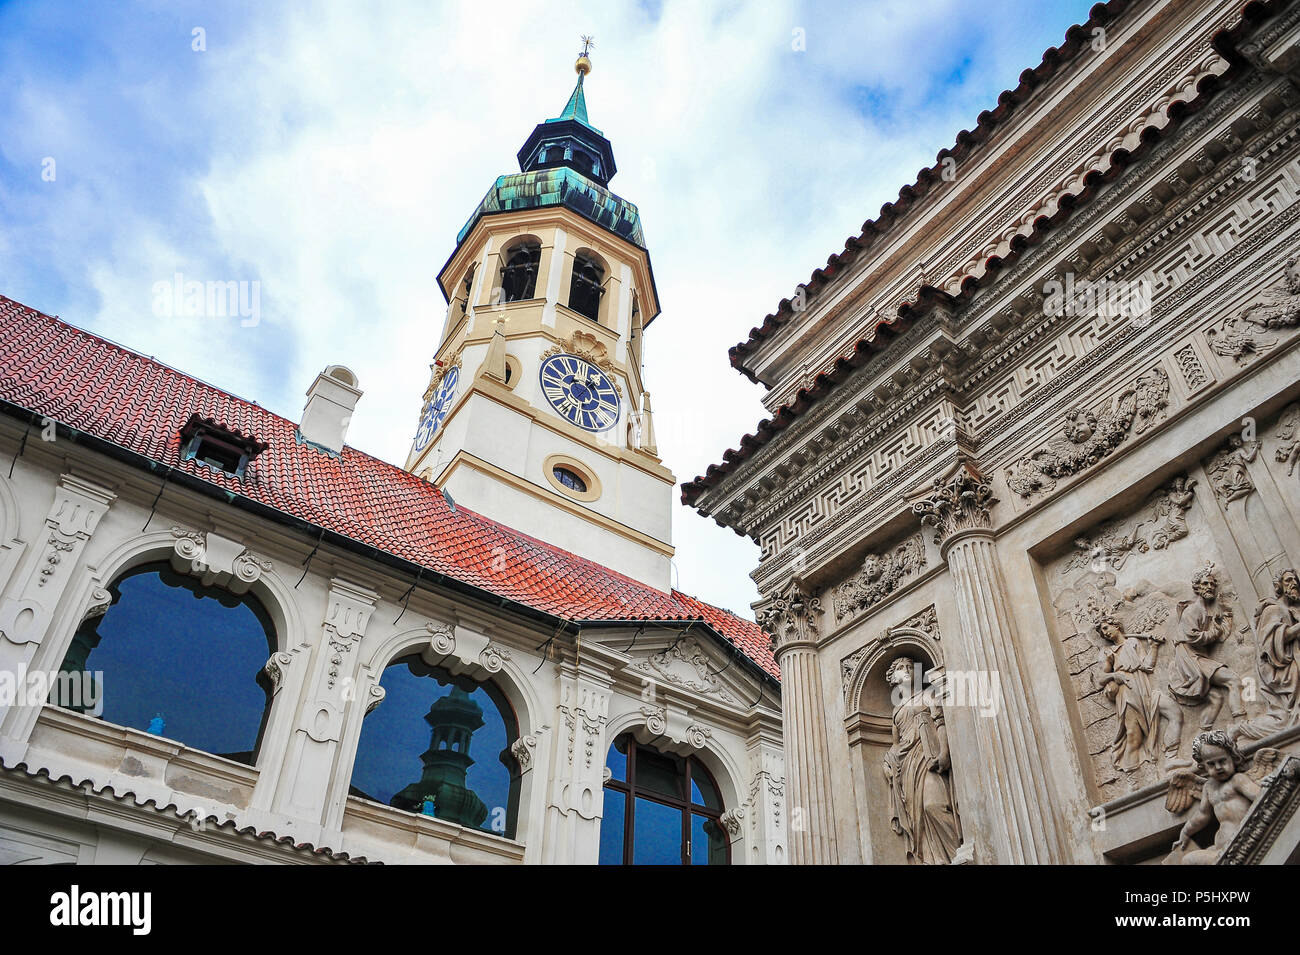 Our Lady of Loreto Church, Prague. Interior courtyard with the Santa Casa (Holy House) and Clock Tower behind. - Stock Image